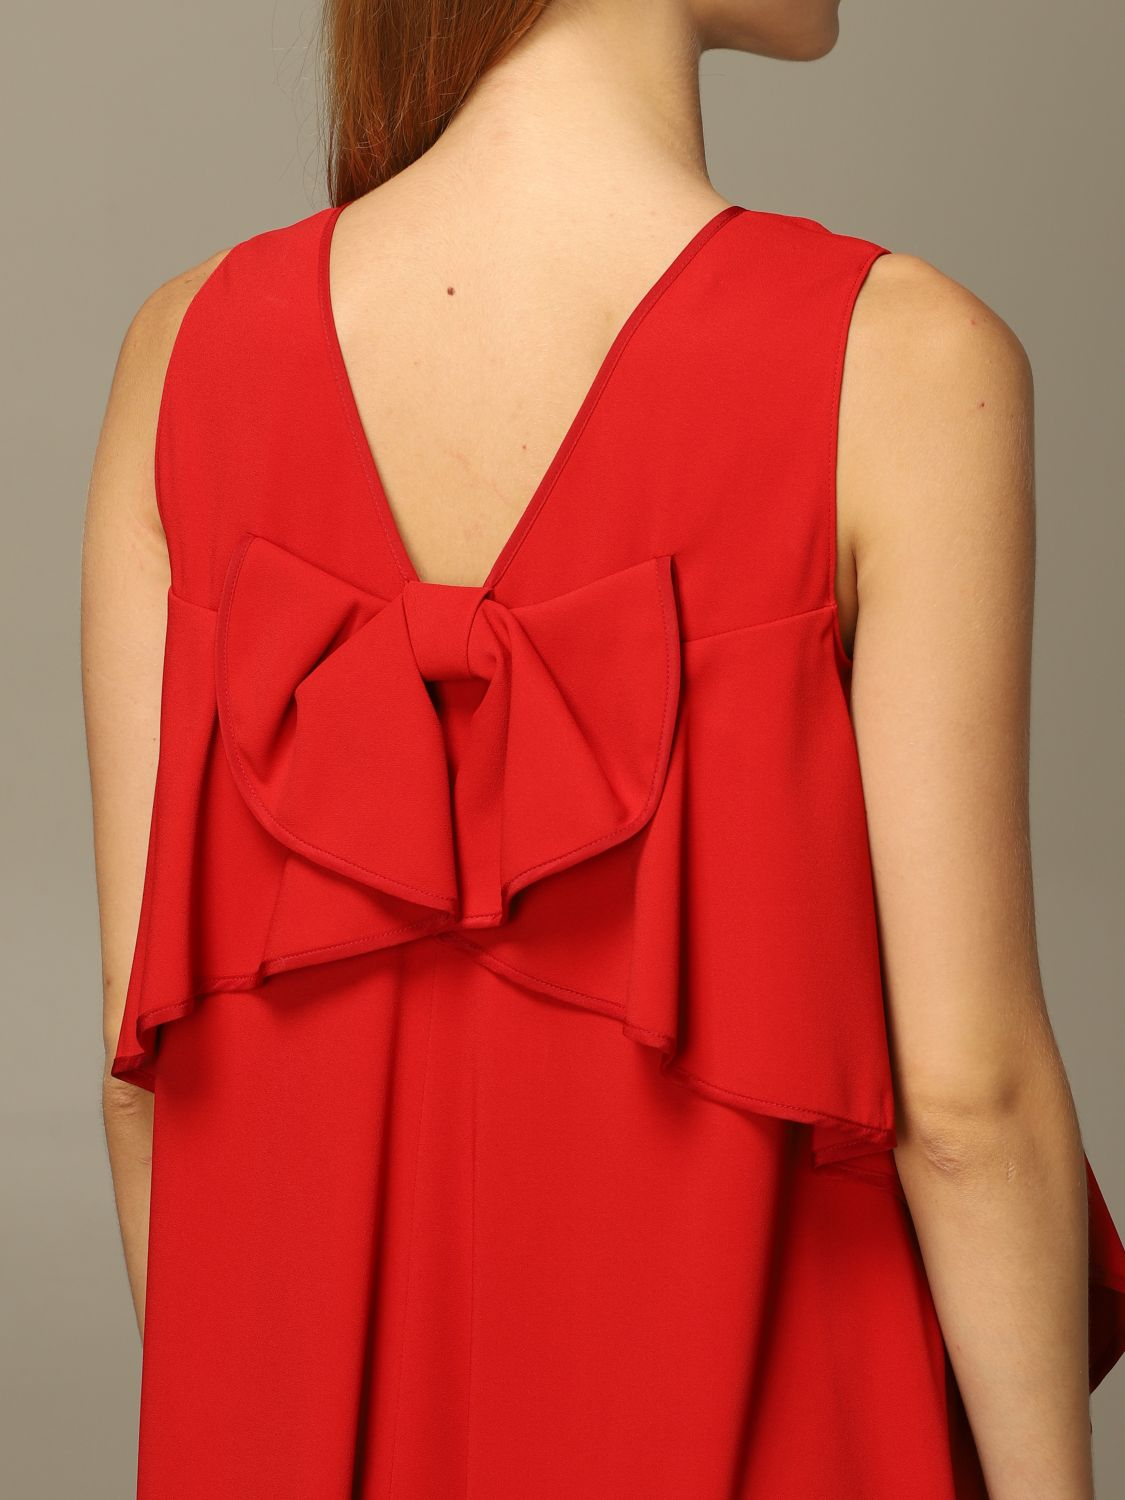 Robes Femme Red Valentino Robes Red Valentino Femme Rouge Robes Red Valentino Ur3var25 3sm Giglio Fr